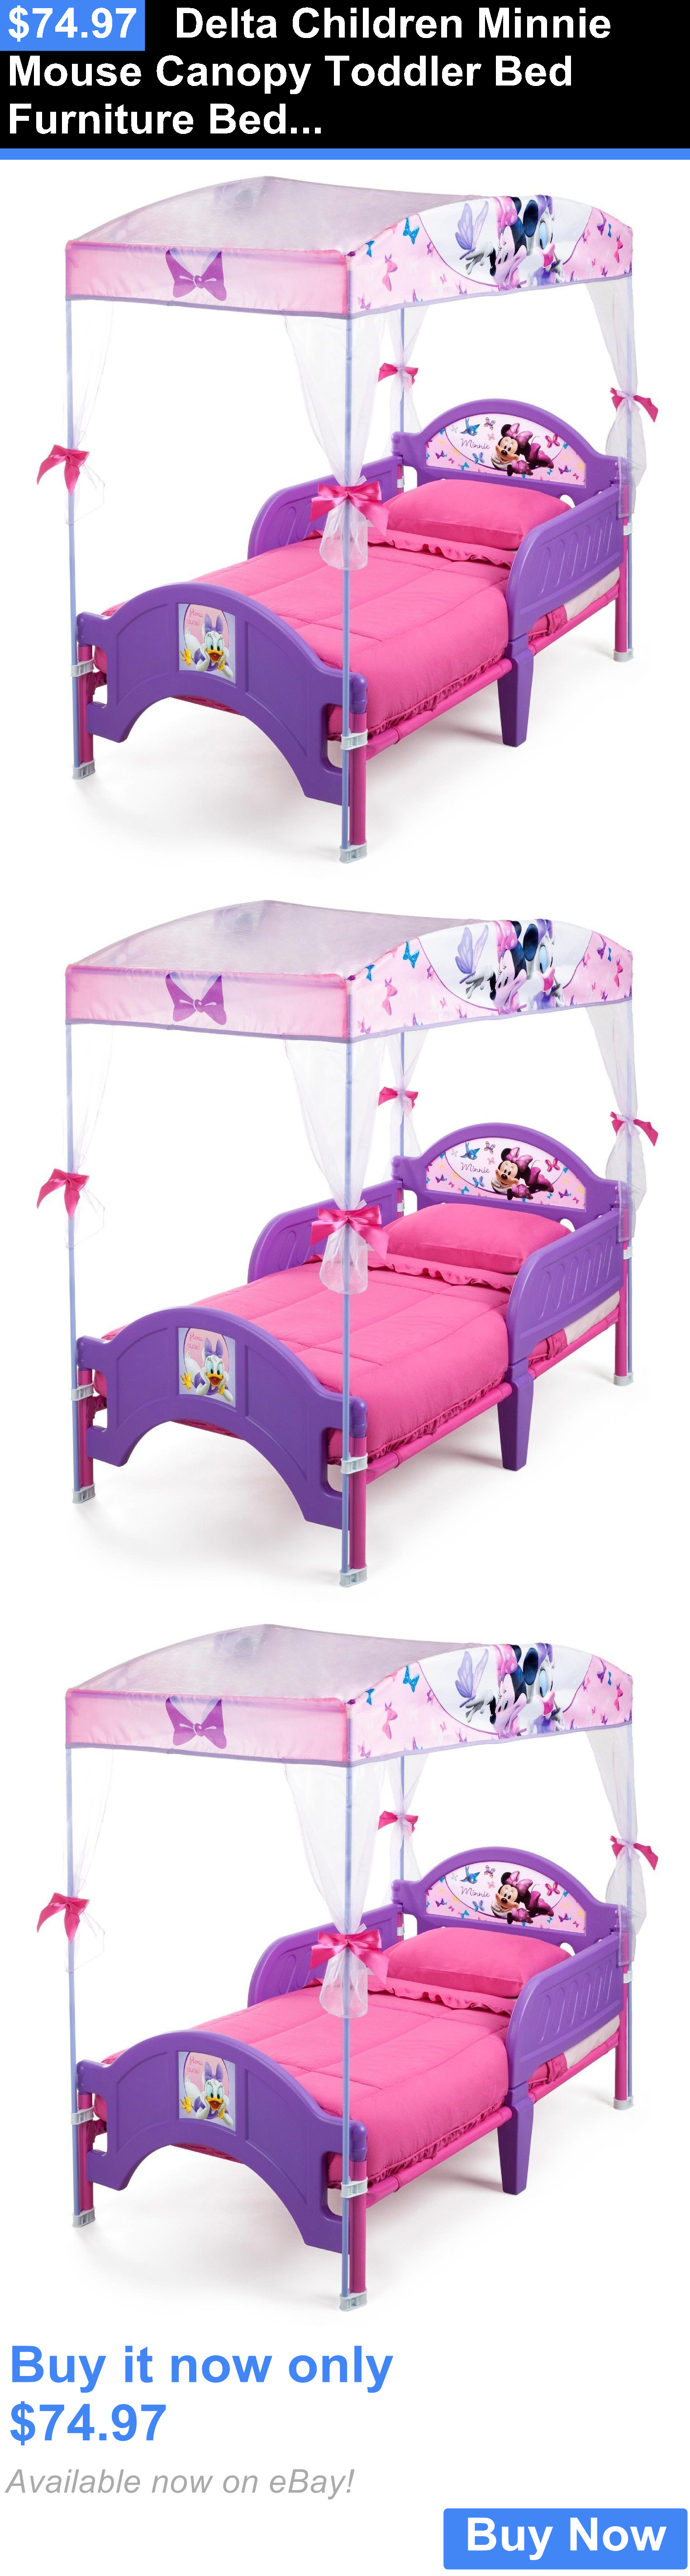 - Kids Furniture: Delta Children Minnie Mouse Canopy Toddler Bed